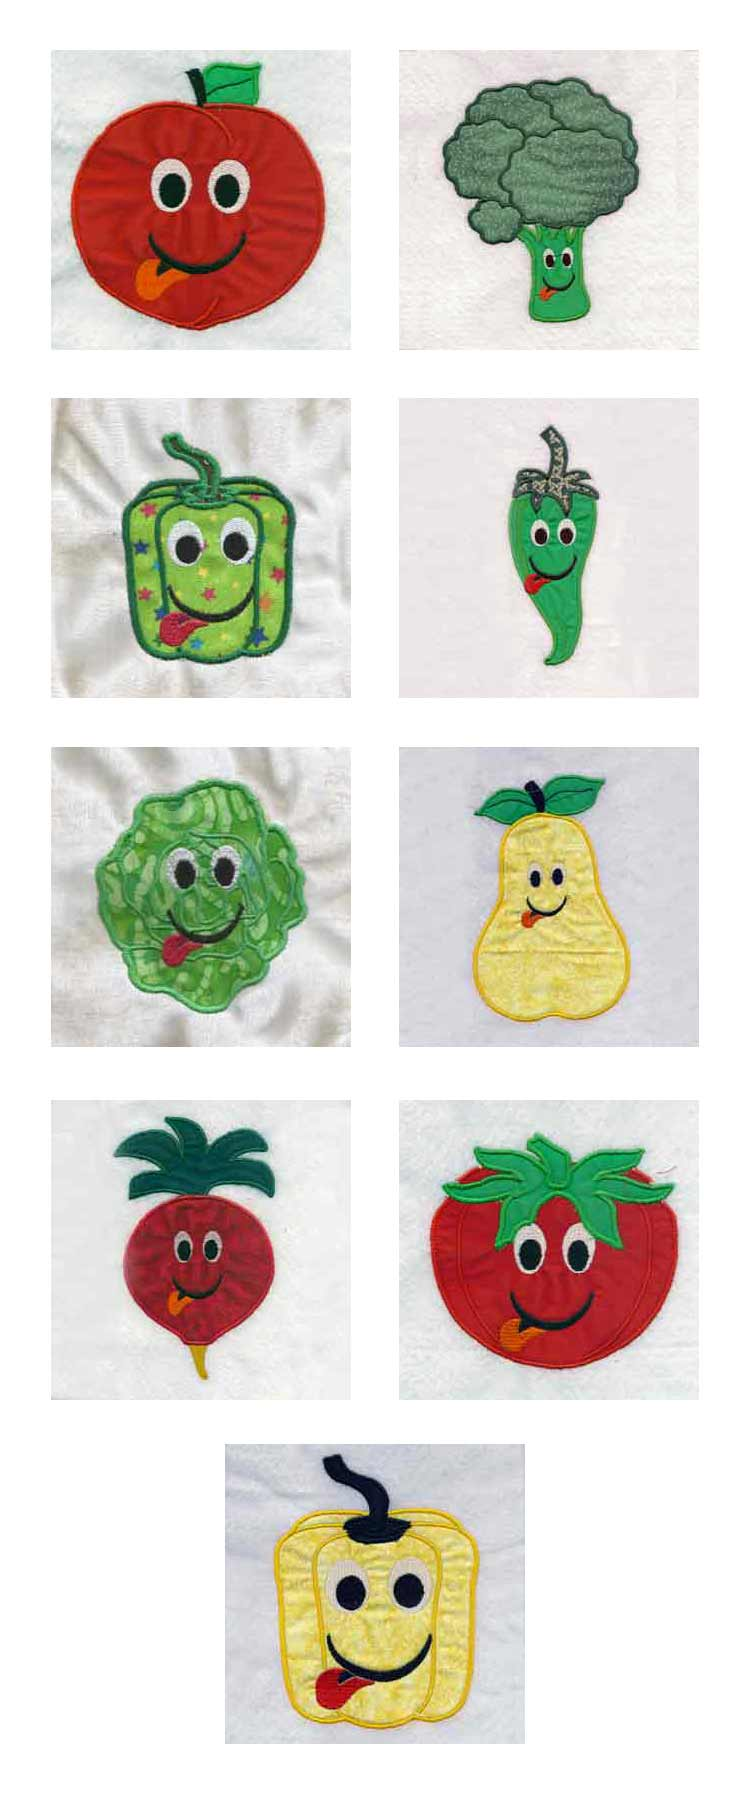 Applique Fruits and Veggies Embroidery Machine Design Details